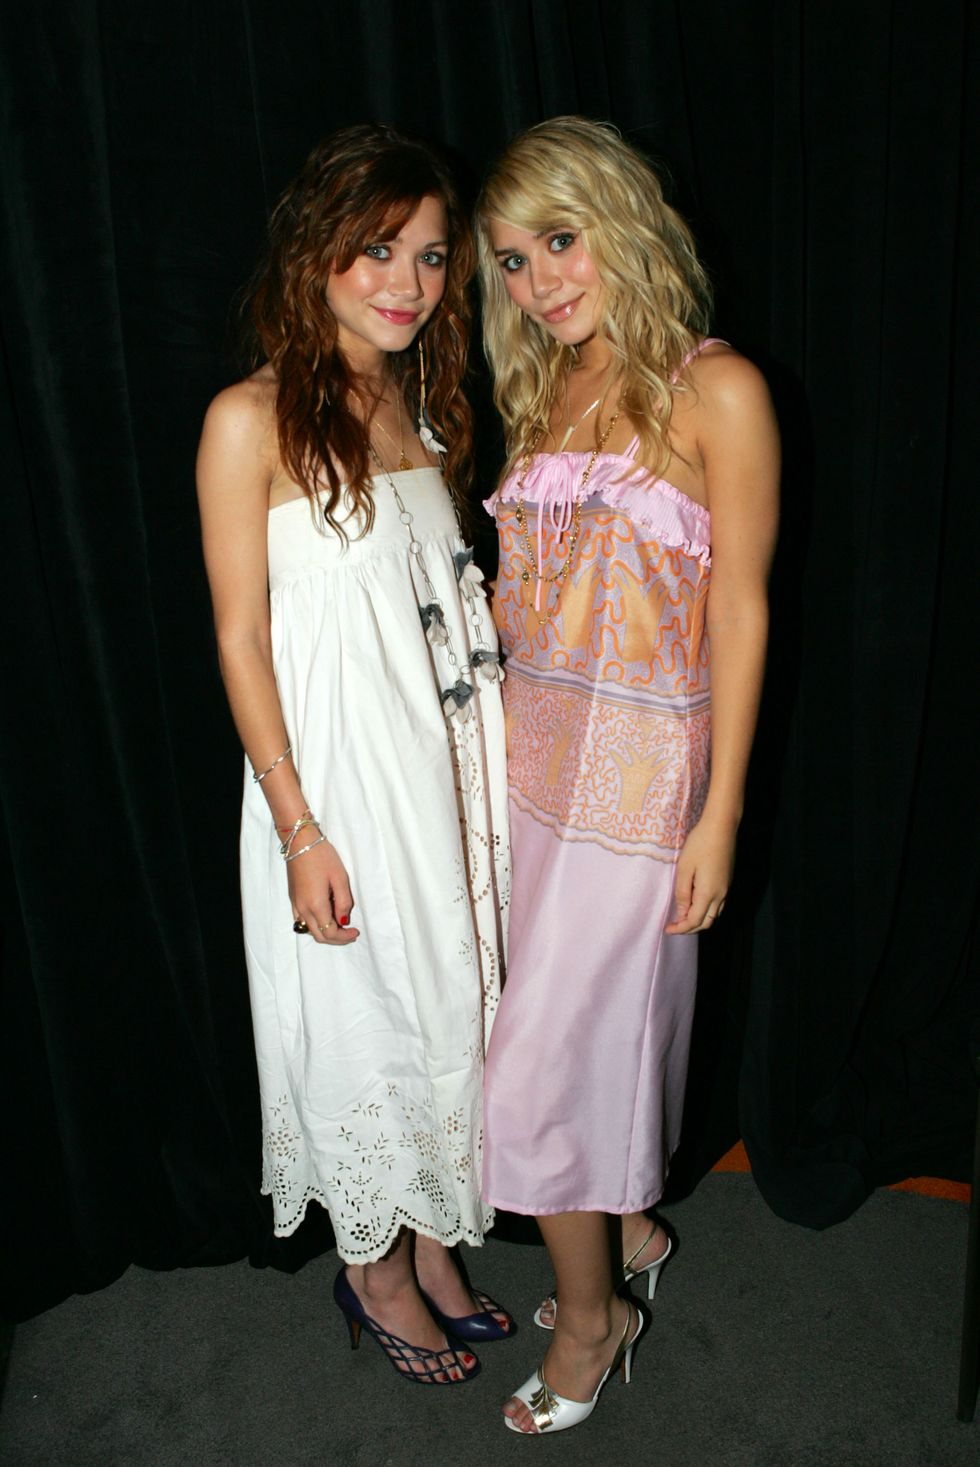 August 29, 2004 The 2004 Video Music Awards saw the twins dressed in similar silhouettes. Mary-Kate kept it simple in plain white, but Ashley jazzed it up with a pink and orange print.